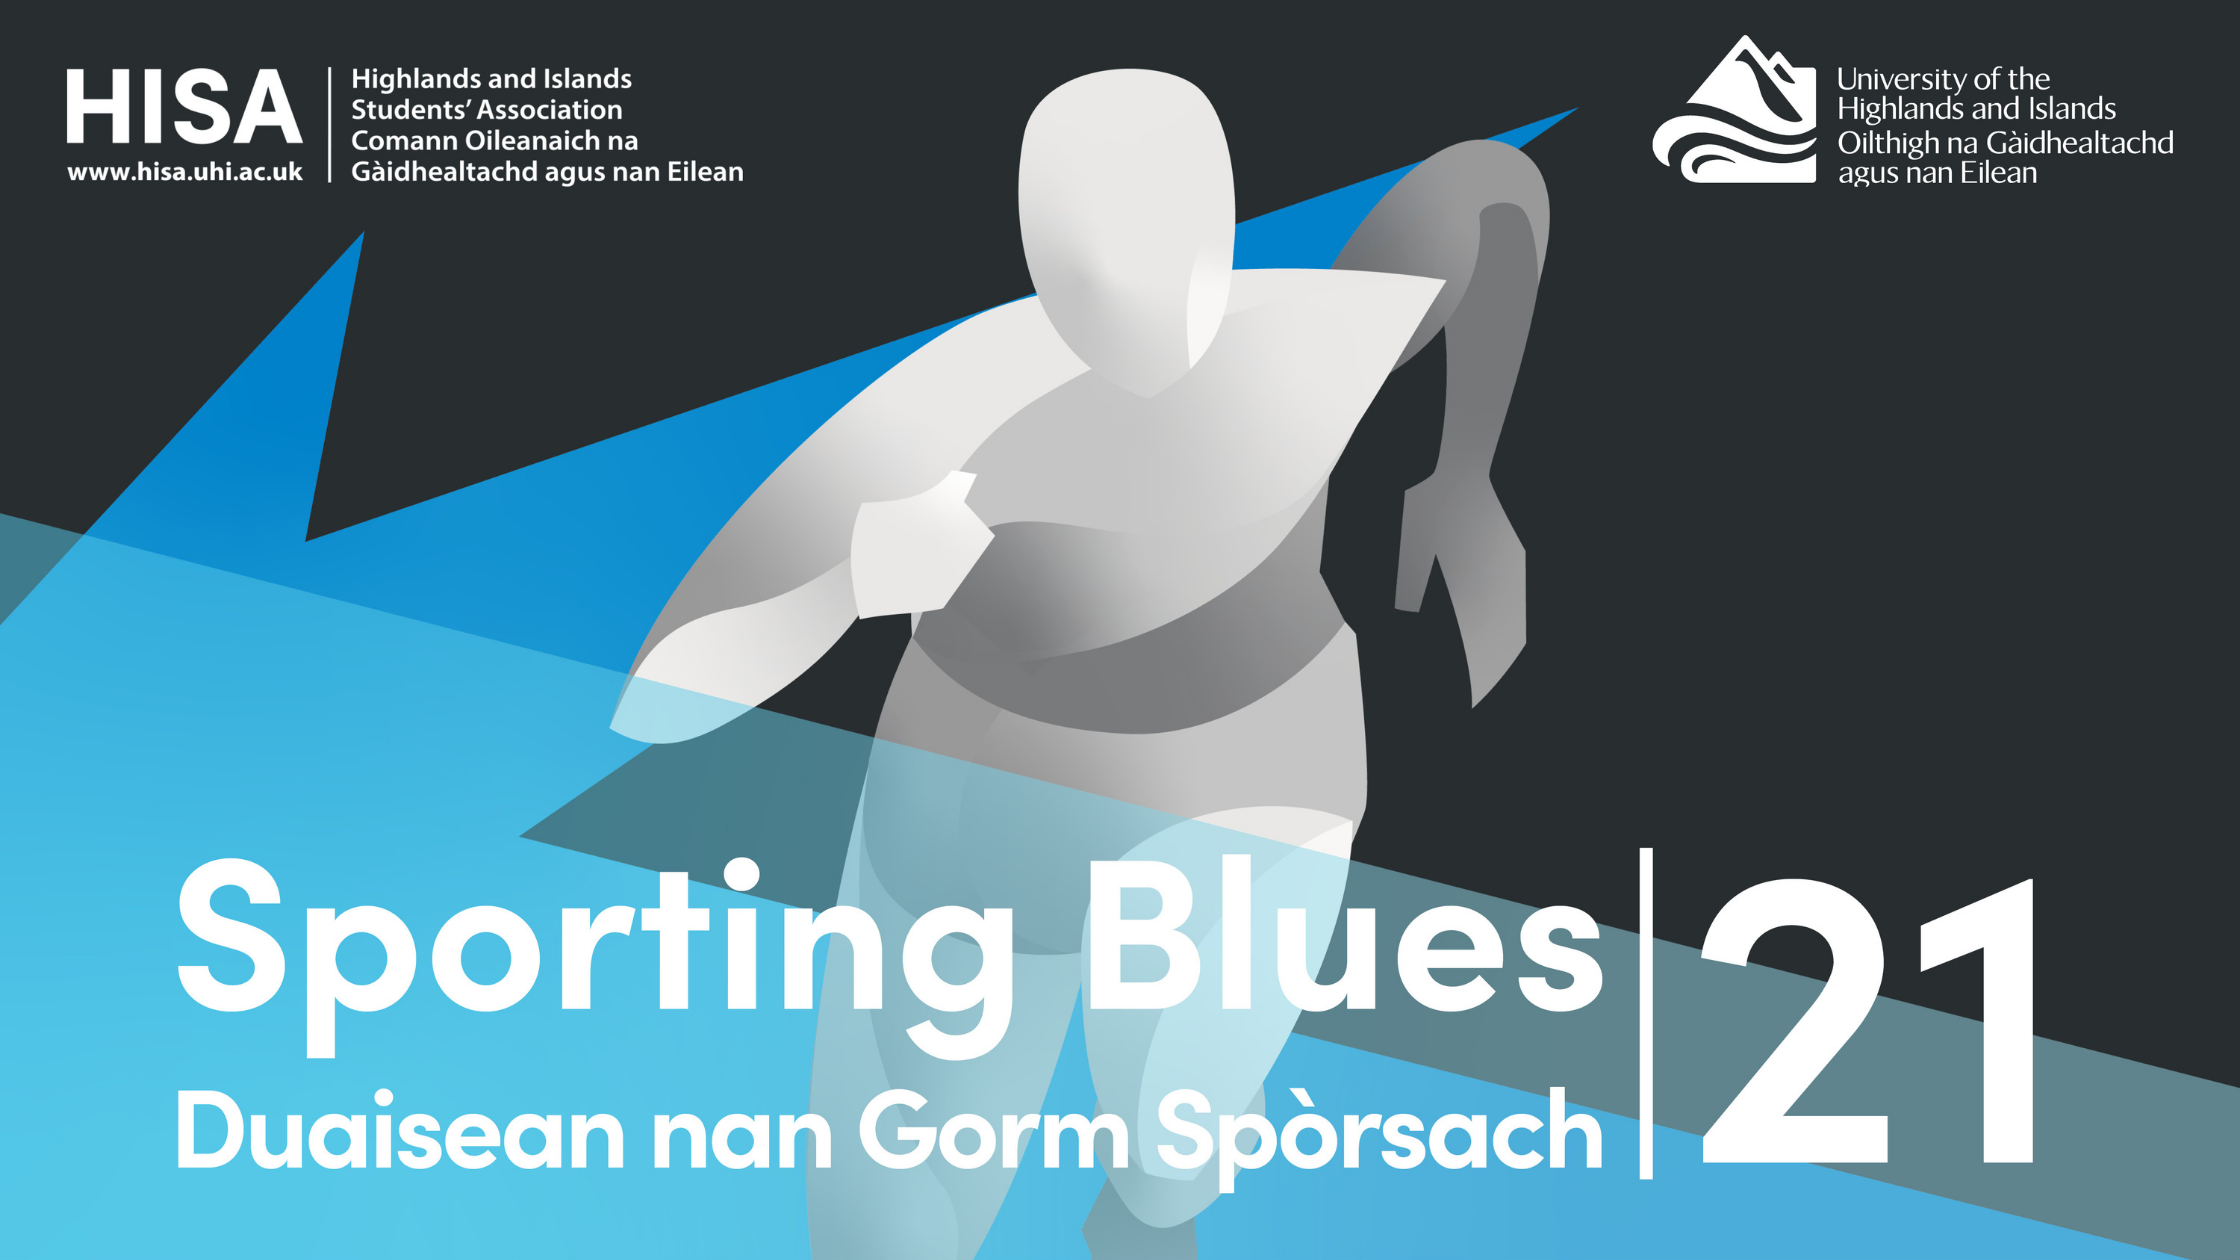 Sporting blues website banner